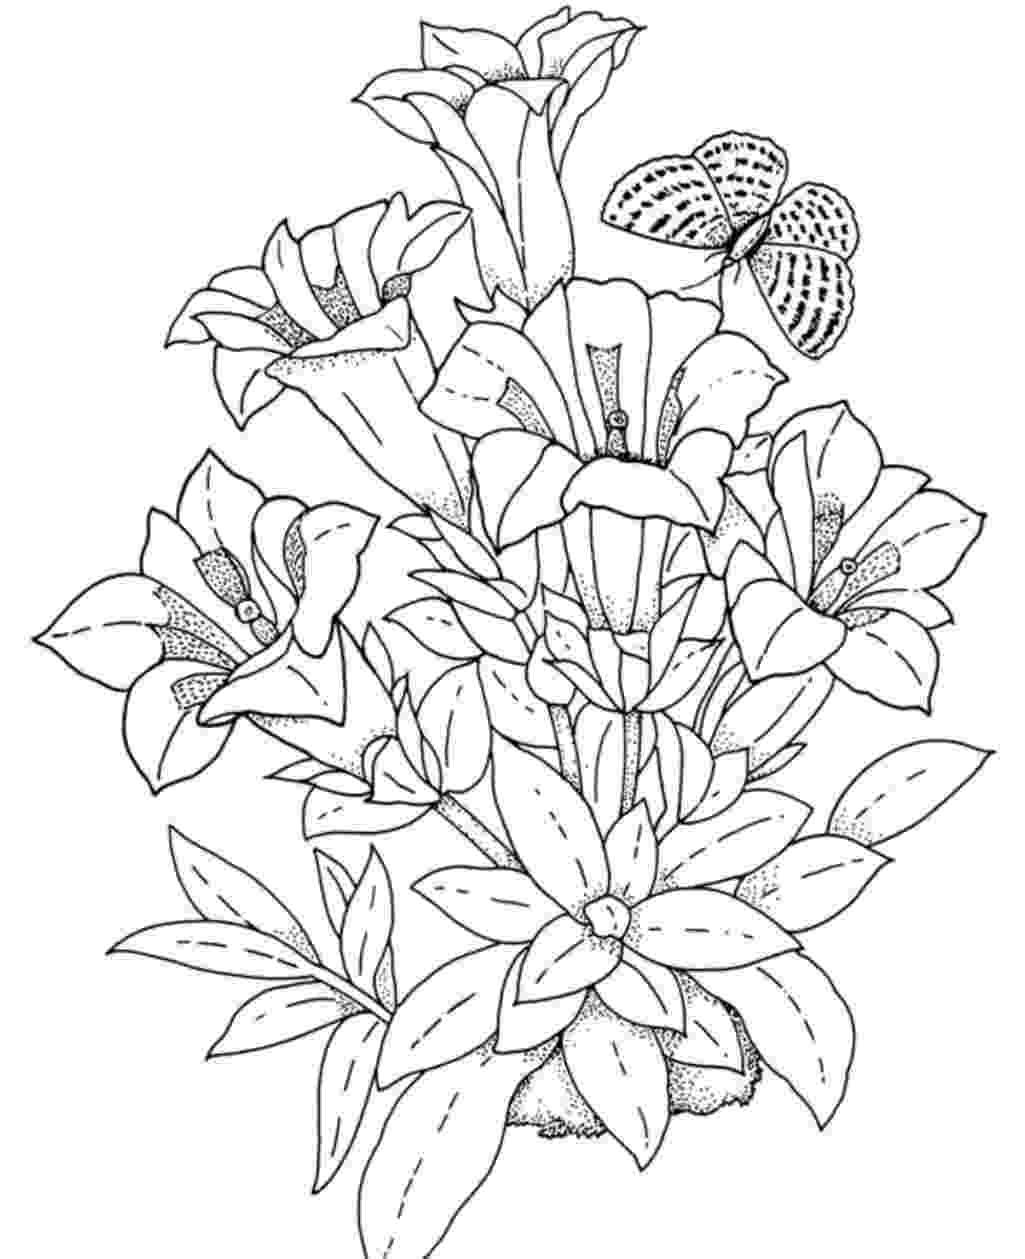 flowers printable coloring pages detailed flower coloring pages to download and print for free flowers coloring printable pages